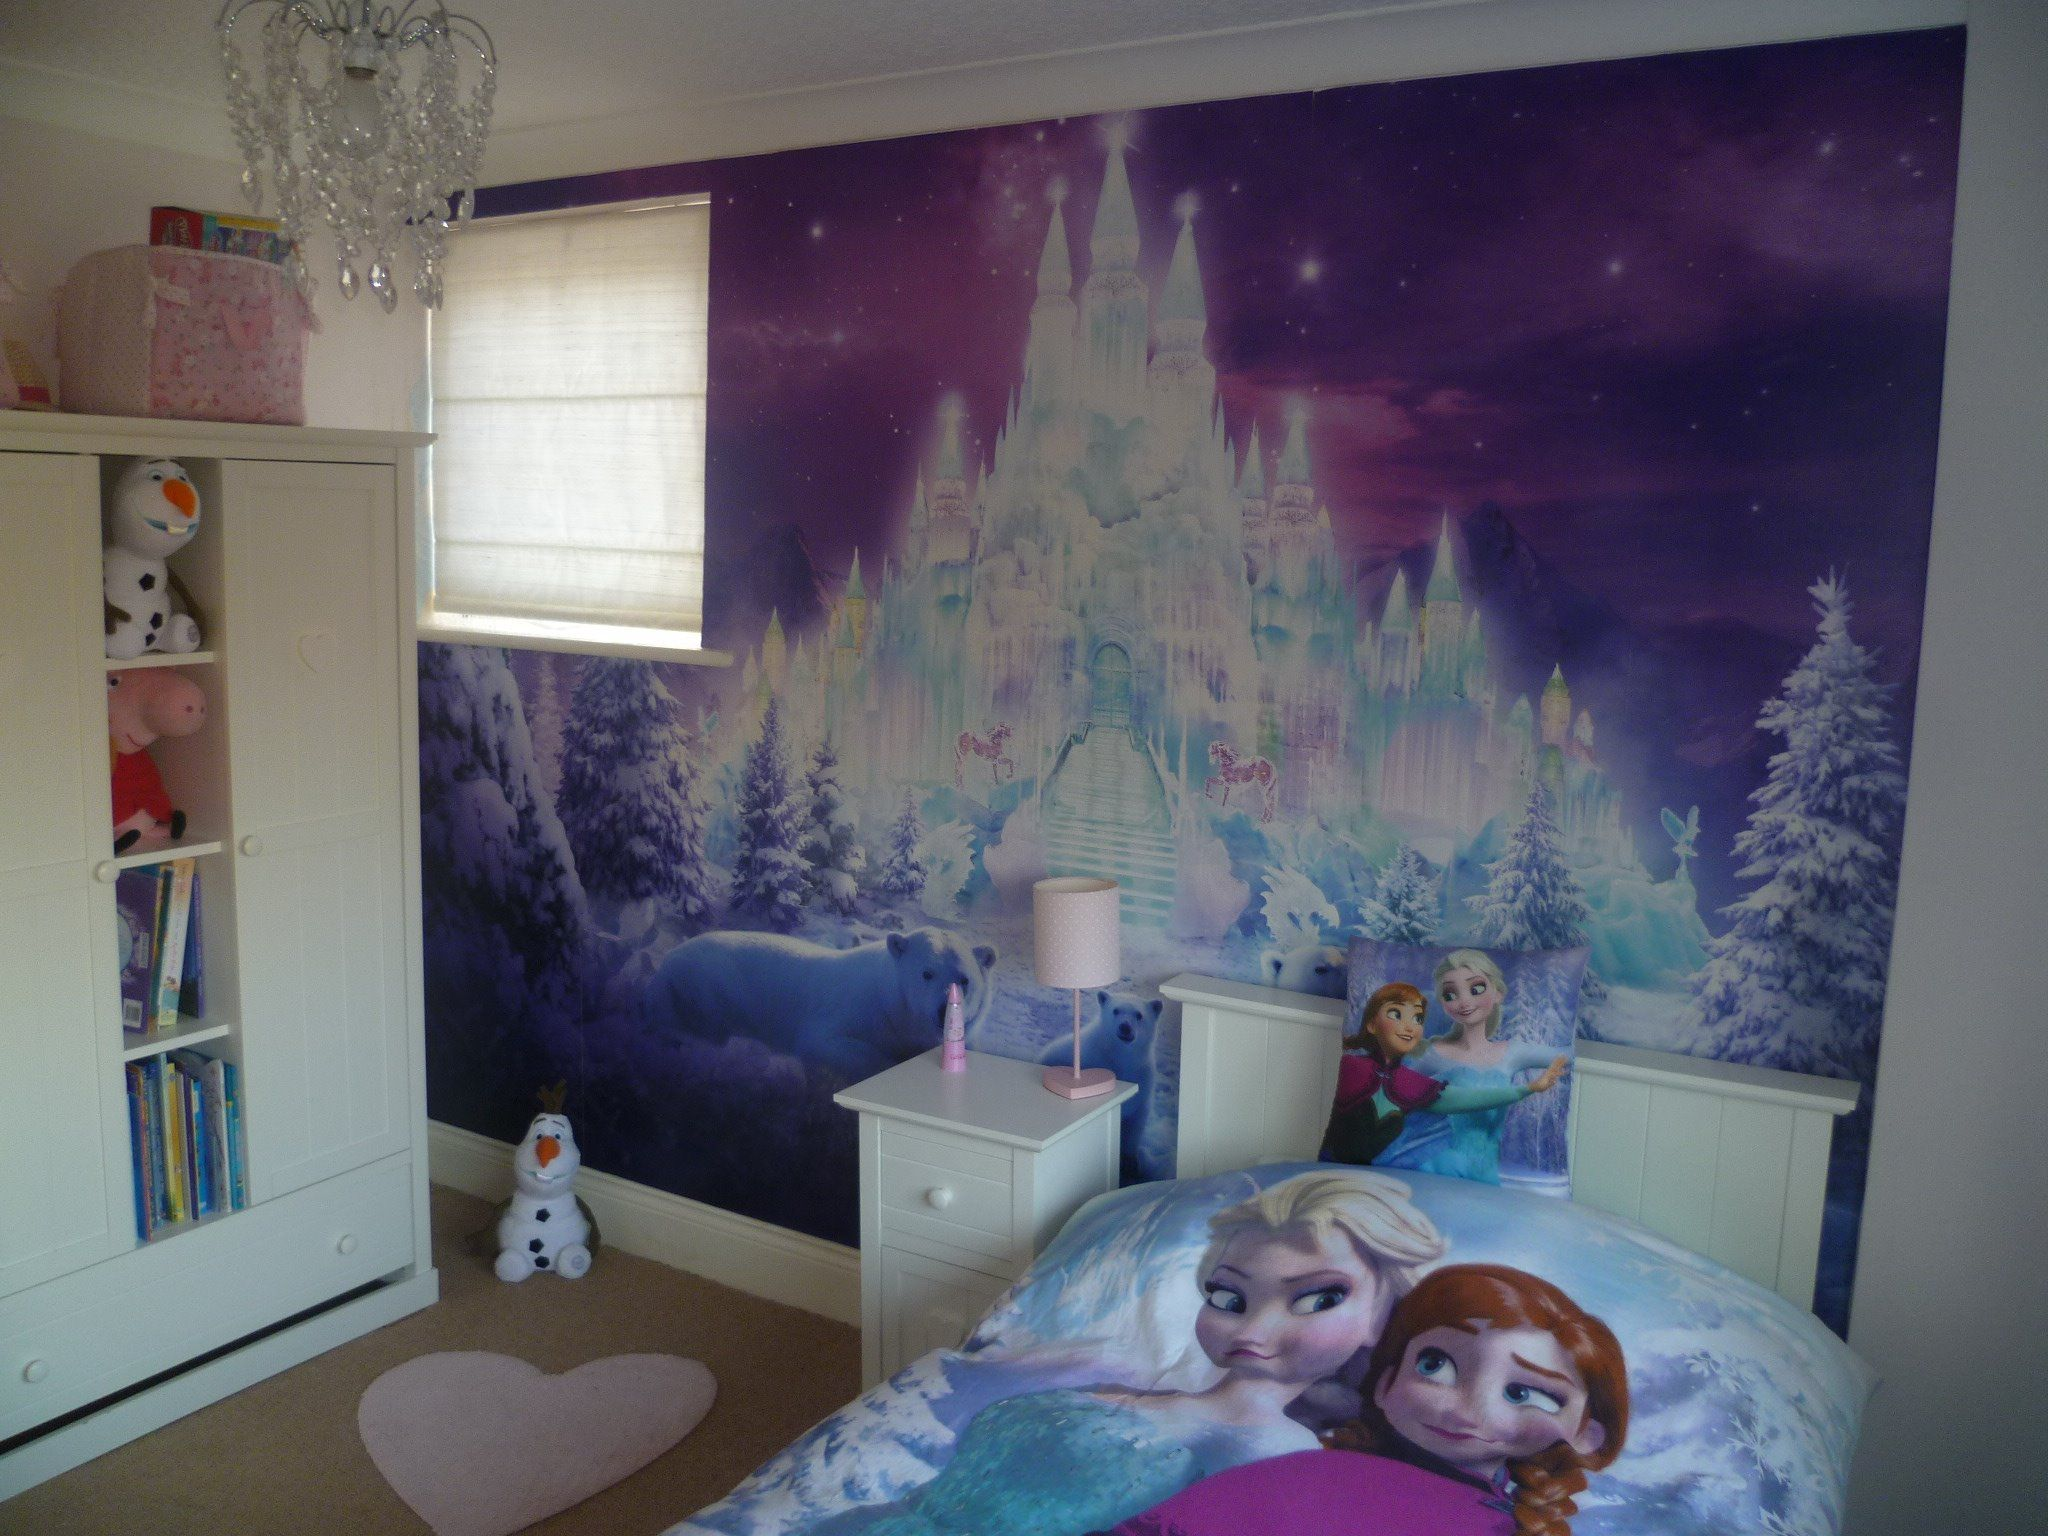 A Winter Wonderland Wall Mural By Philip Straub - Wallsauce